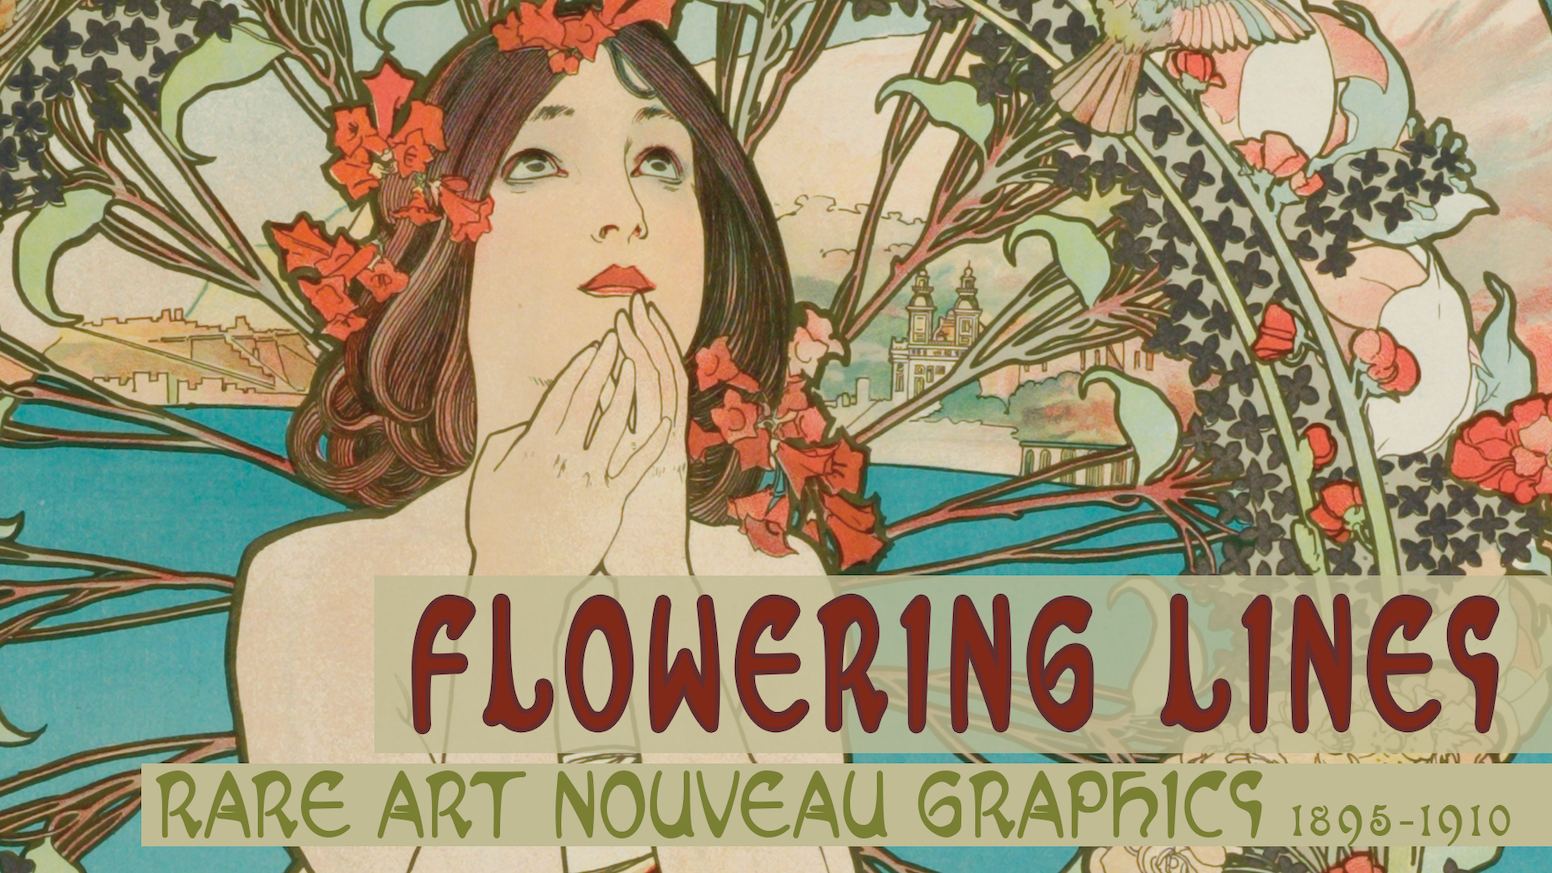 flowering lines rare art nouveau posters graphics 1895 1910 by